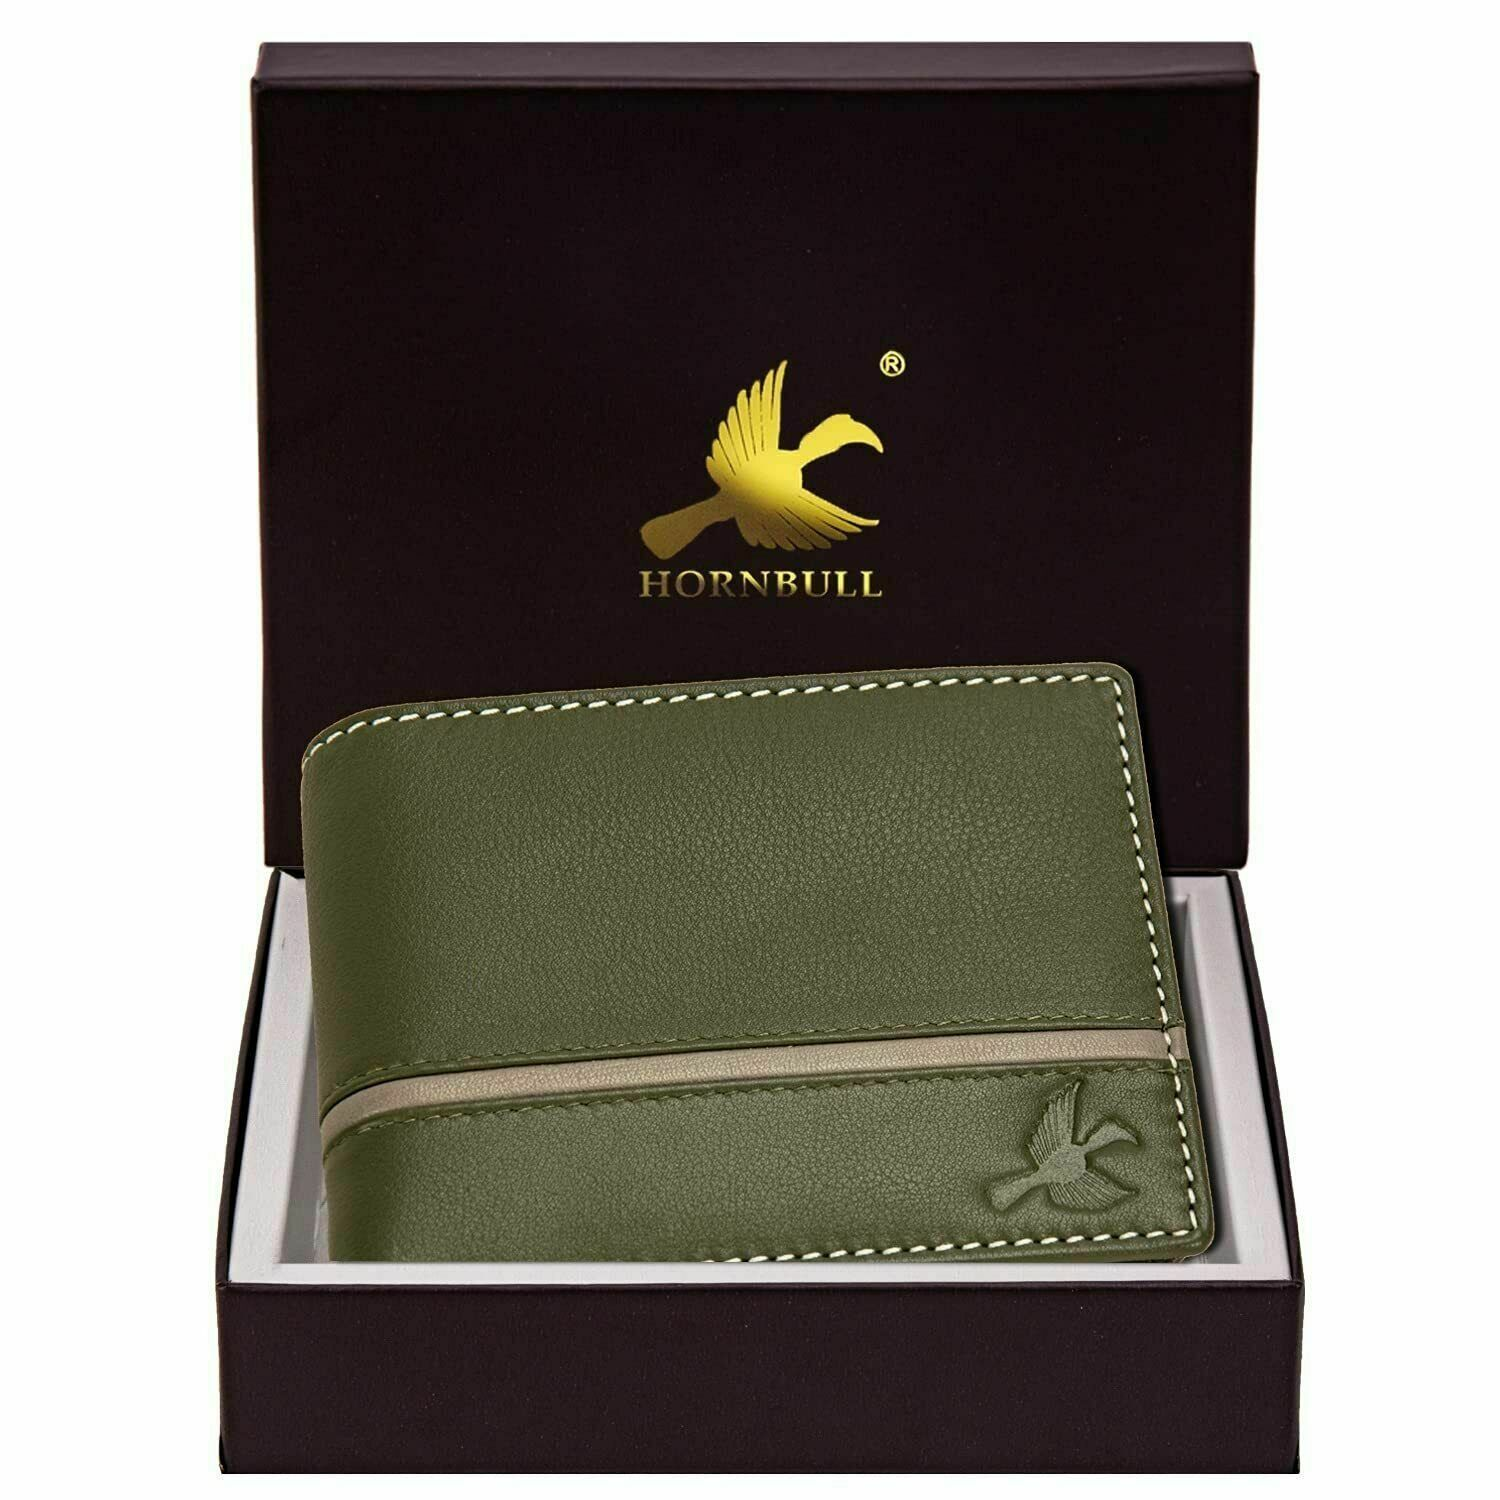 Hornbull Denial Olive Green Mens Leather Wallet – Premium Quality Leather...